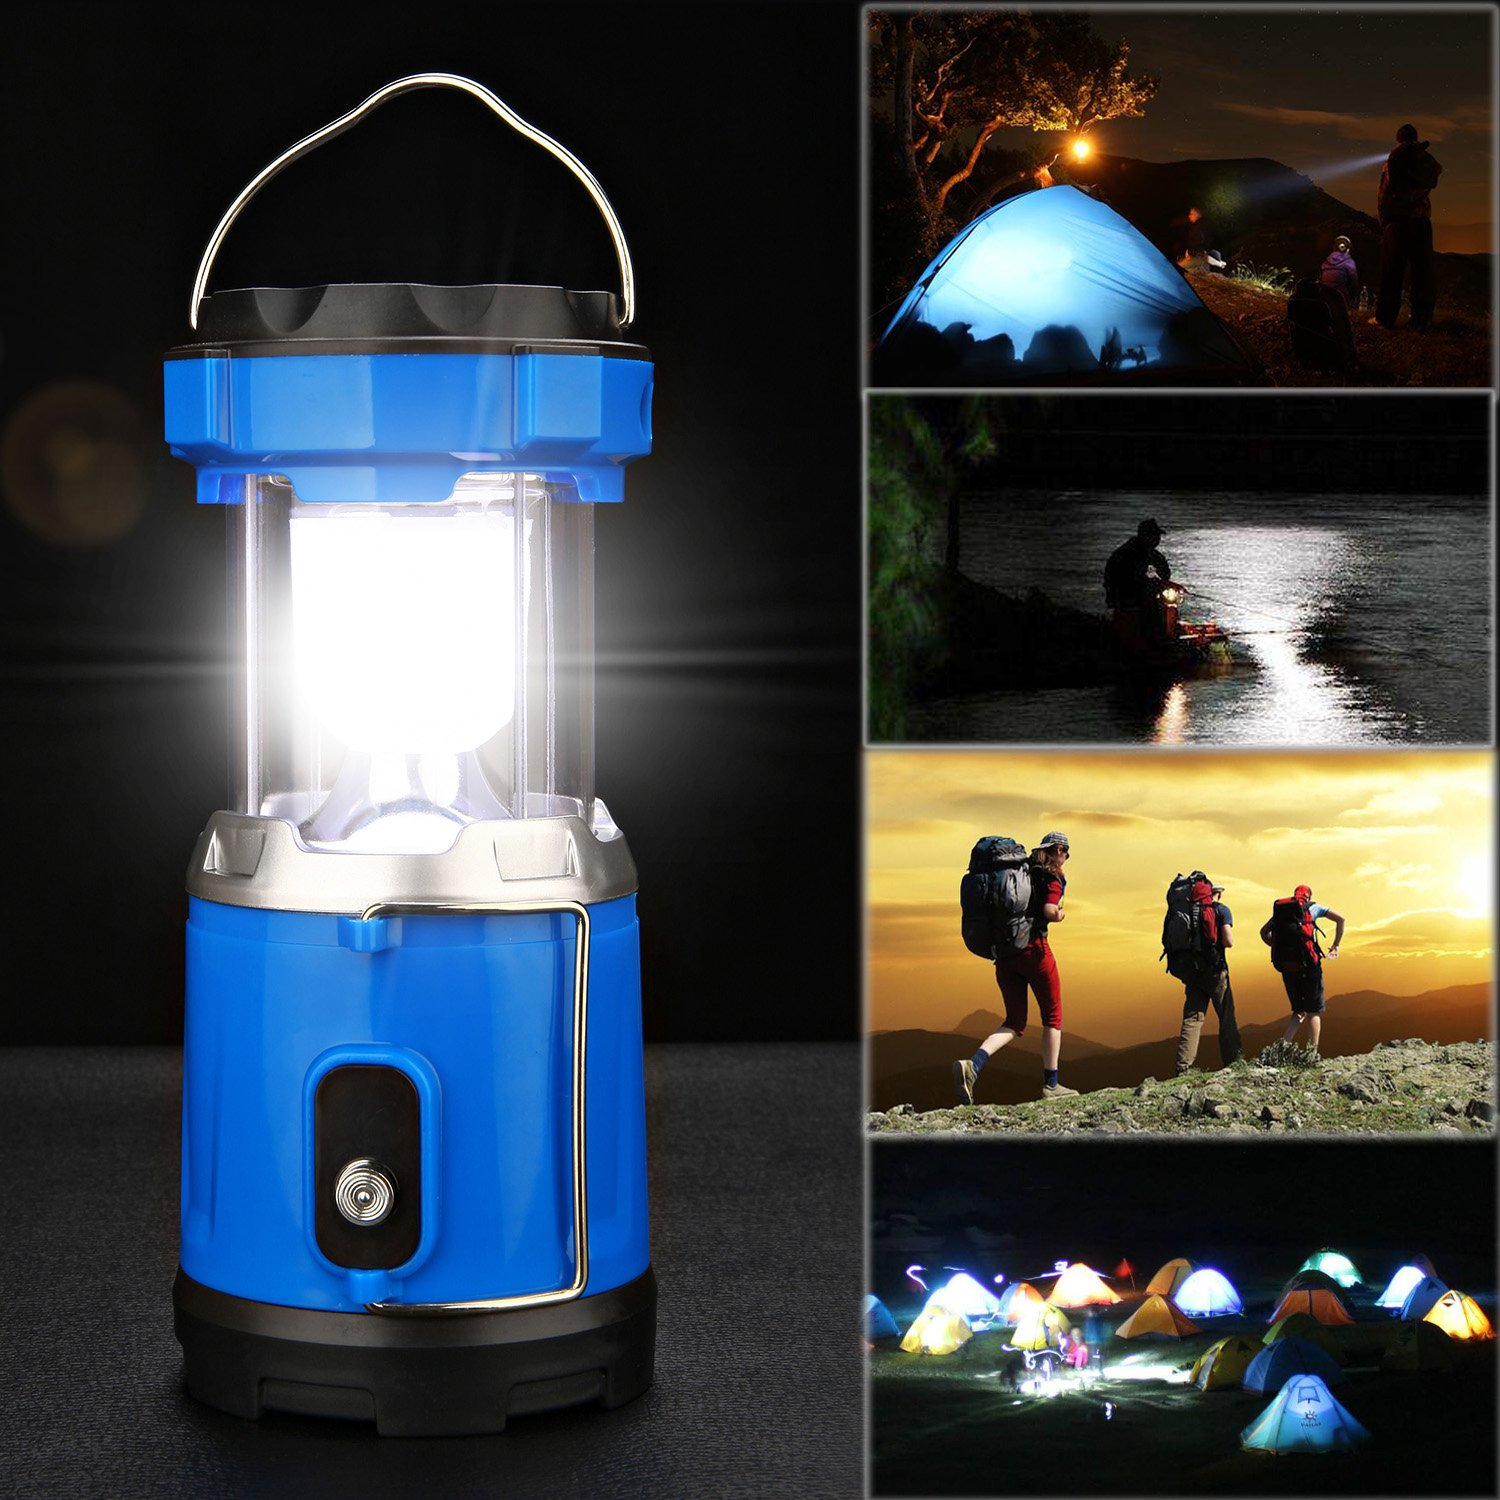 Camping Lantern Light, IRuiYinGo Rechargeable Lamp Solar LED Flashlight with Hanging Blue Color, Great light for Camping/ Hiking/ Backpacking...Outdoor Activities by IRuiYinGo (Image #7)